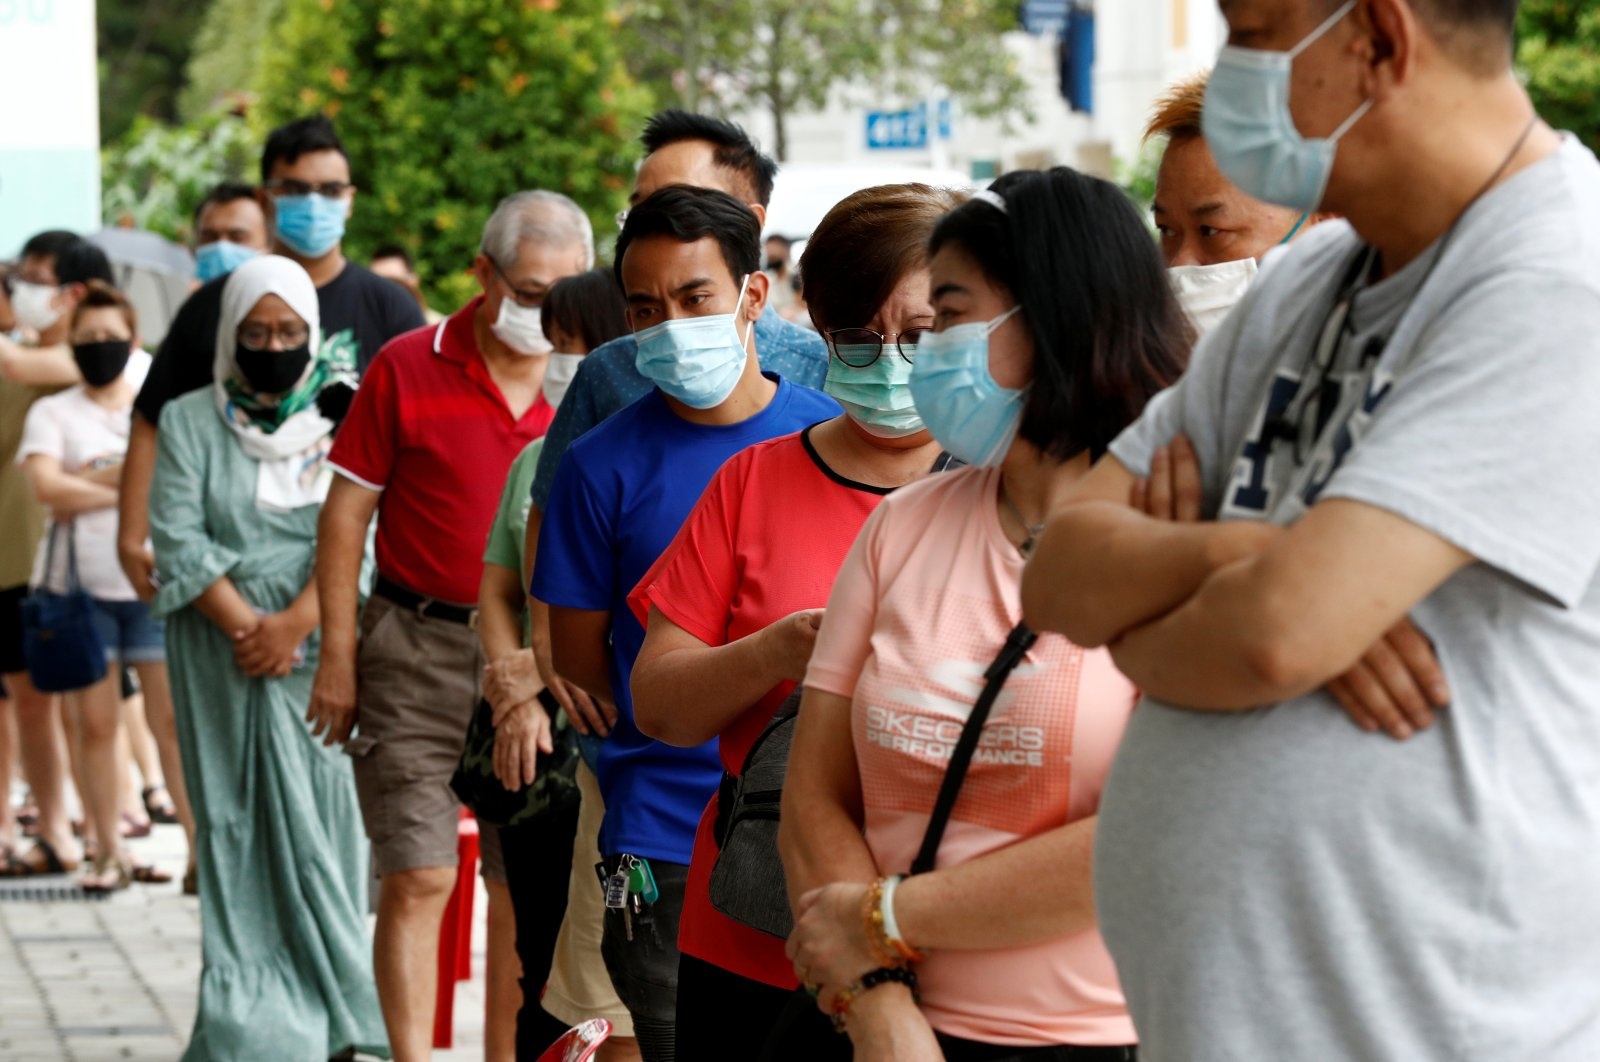 Voters wear protective face masks as they queue up at a polling station during Singapore's general election, amid the coronavirus disease (COVID-19) outbreak, in Singapore July 10, 2020.  (Reuters Photo)